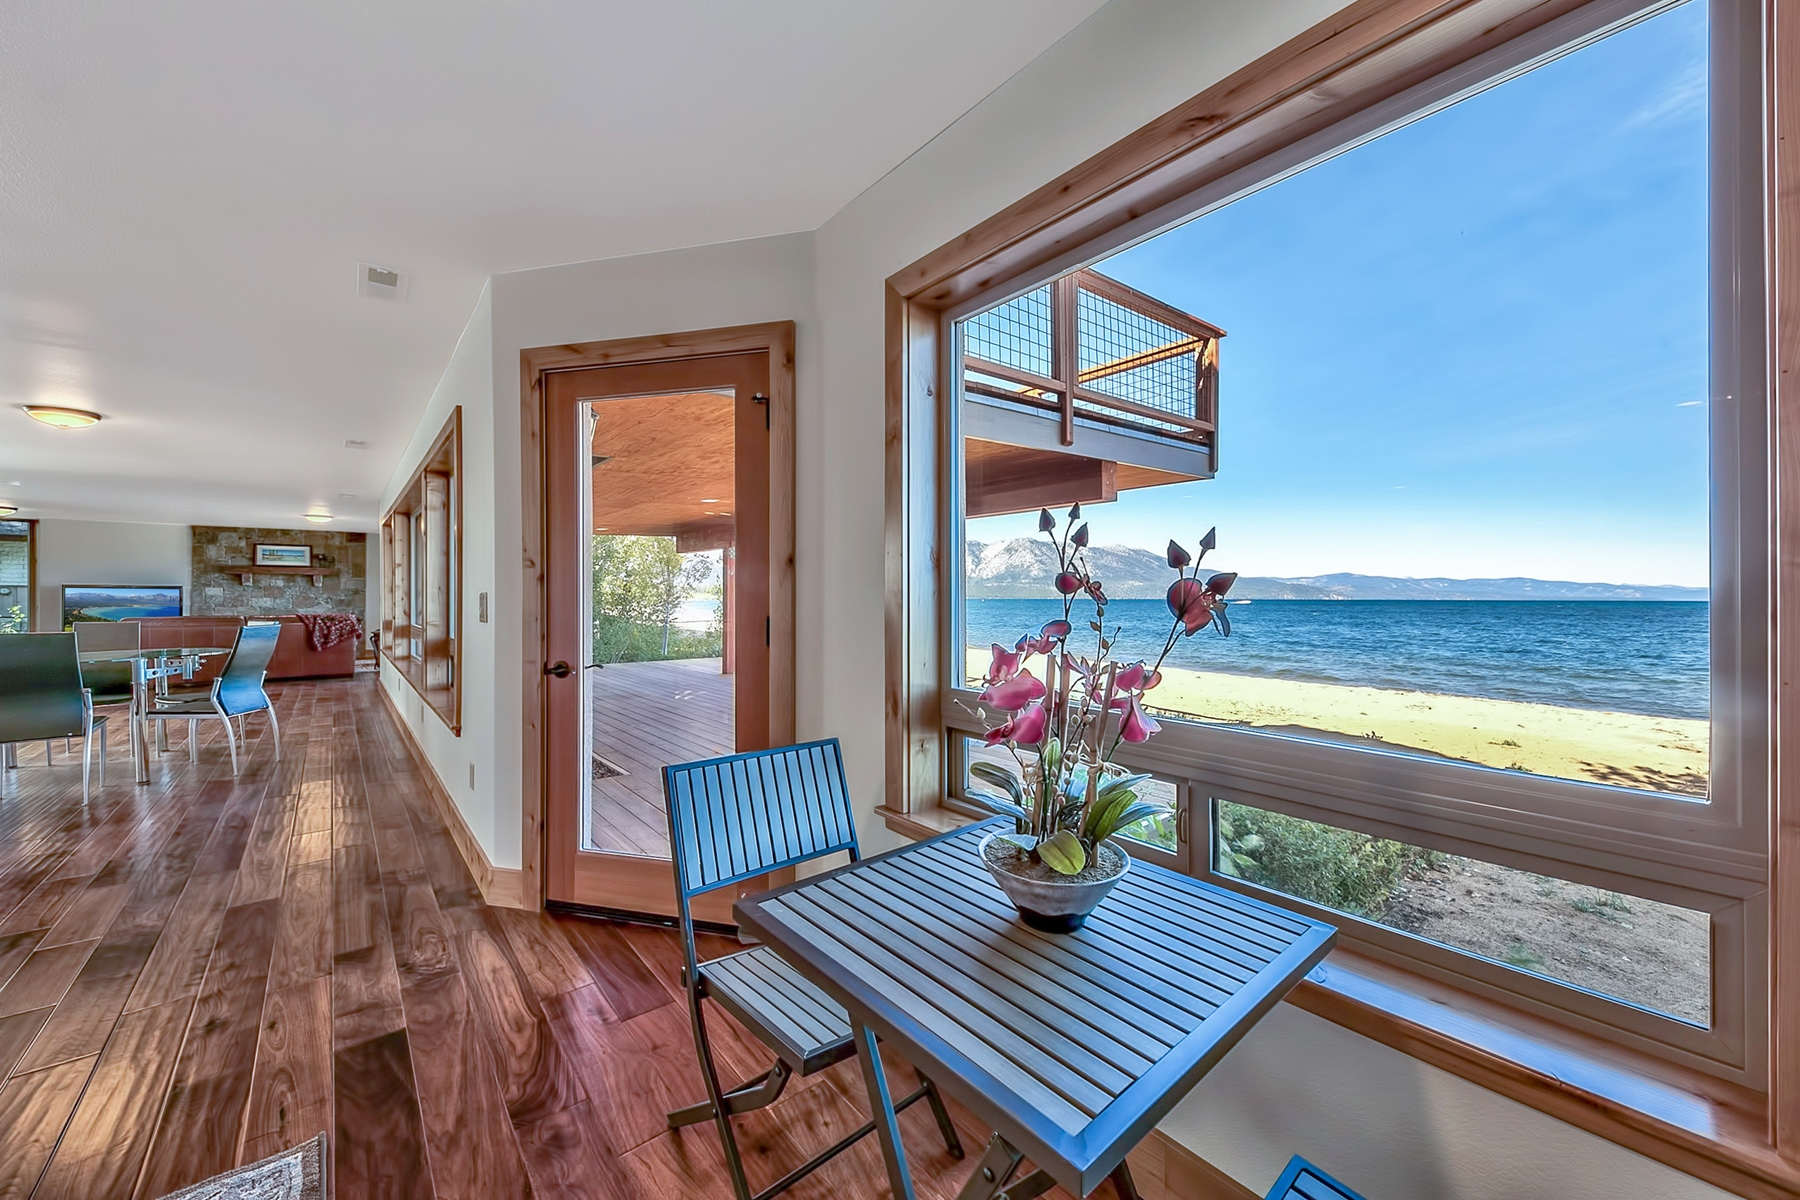 Property 为 销售 在 319 Beach Drive South Lake Tahoe California, 96150 319 Beach Drive 南太浩湖, 加利福尼亚州 96150 美国